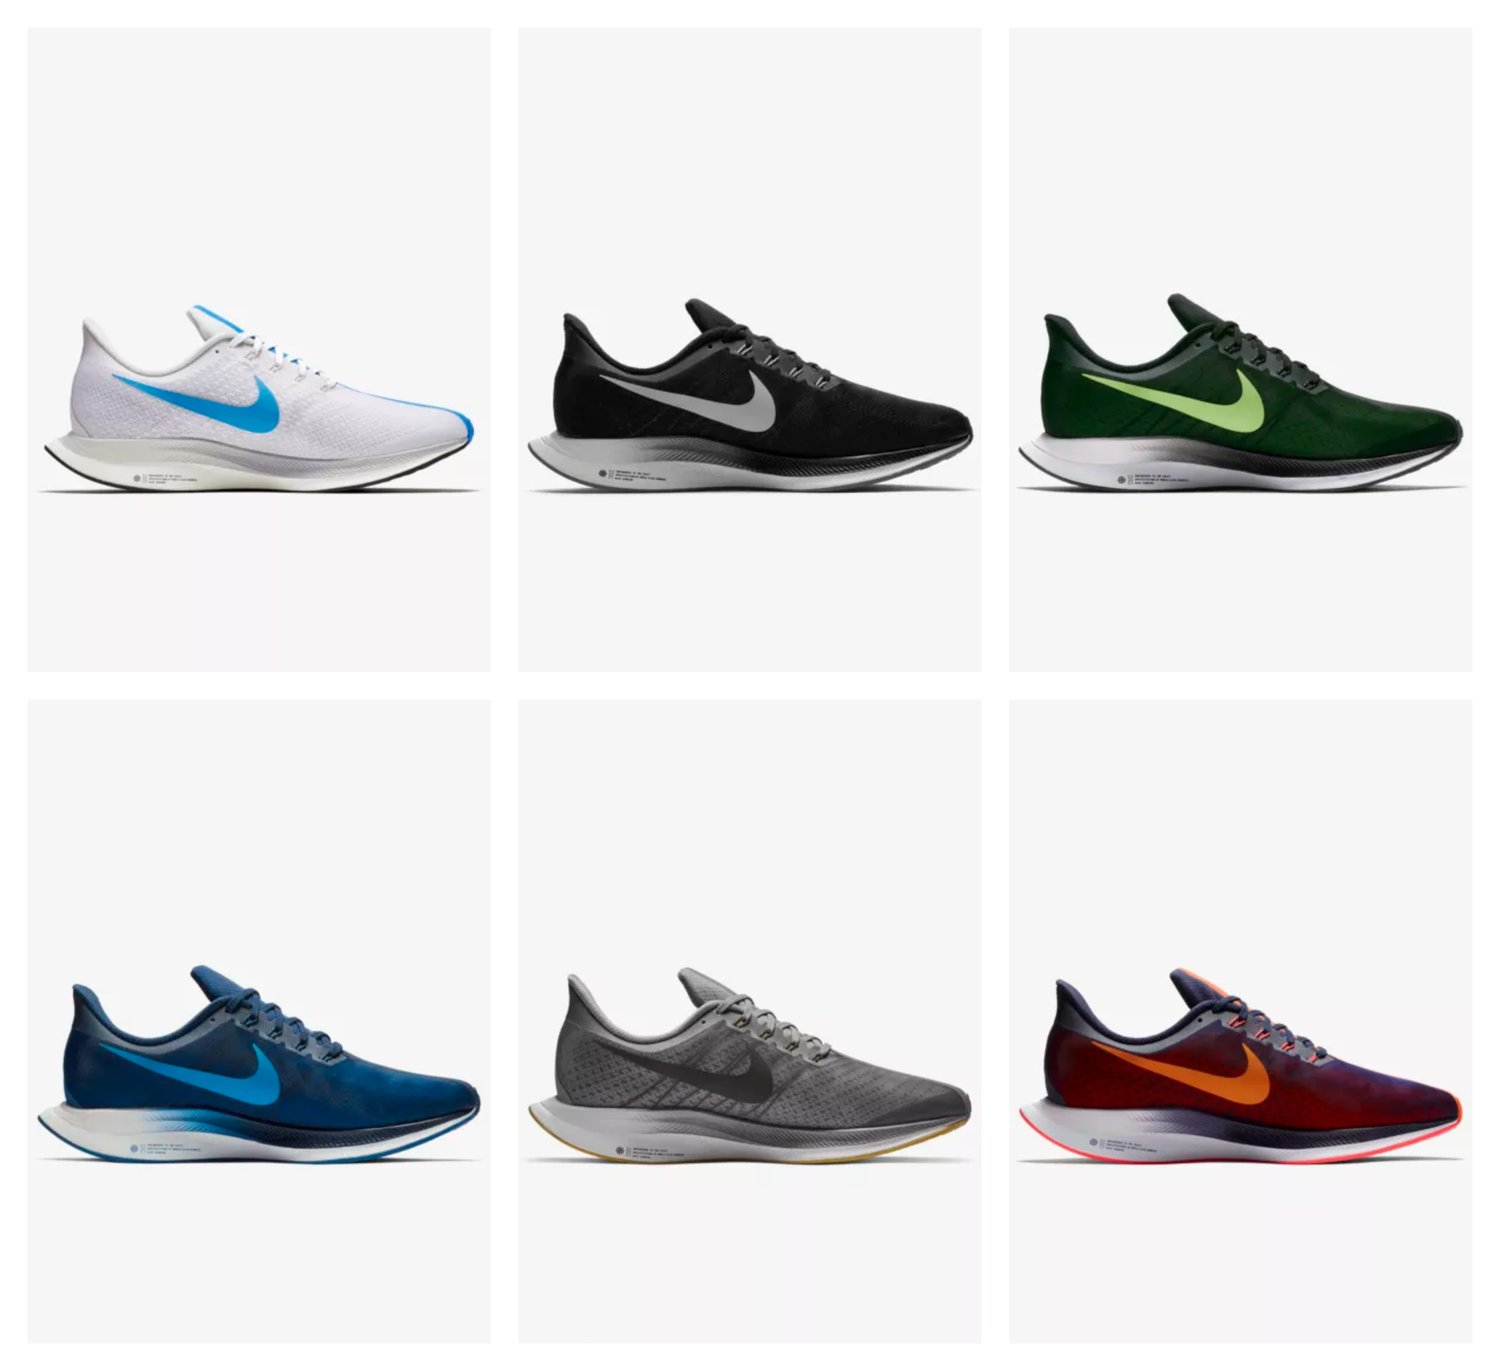 febe587c3fee On Sale  Nike Zoom Pegasus Turbo Colorways